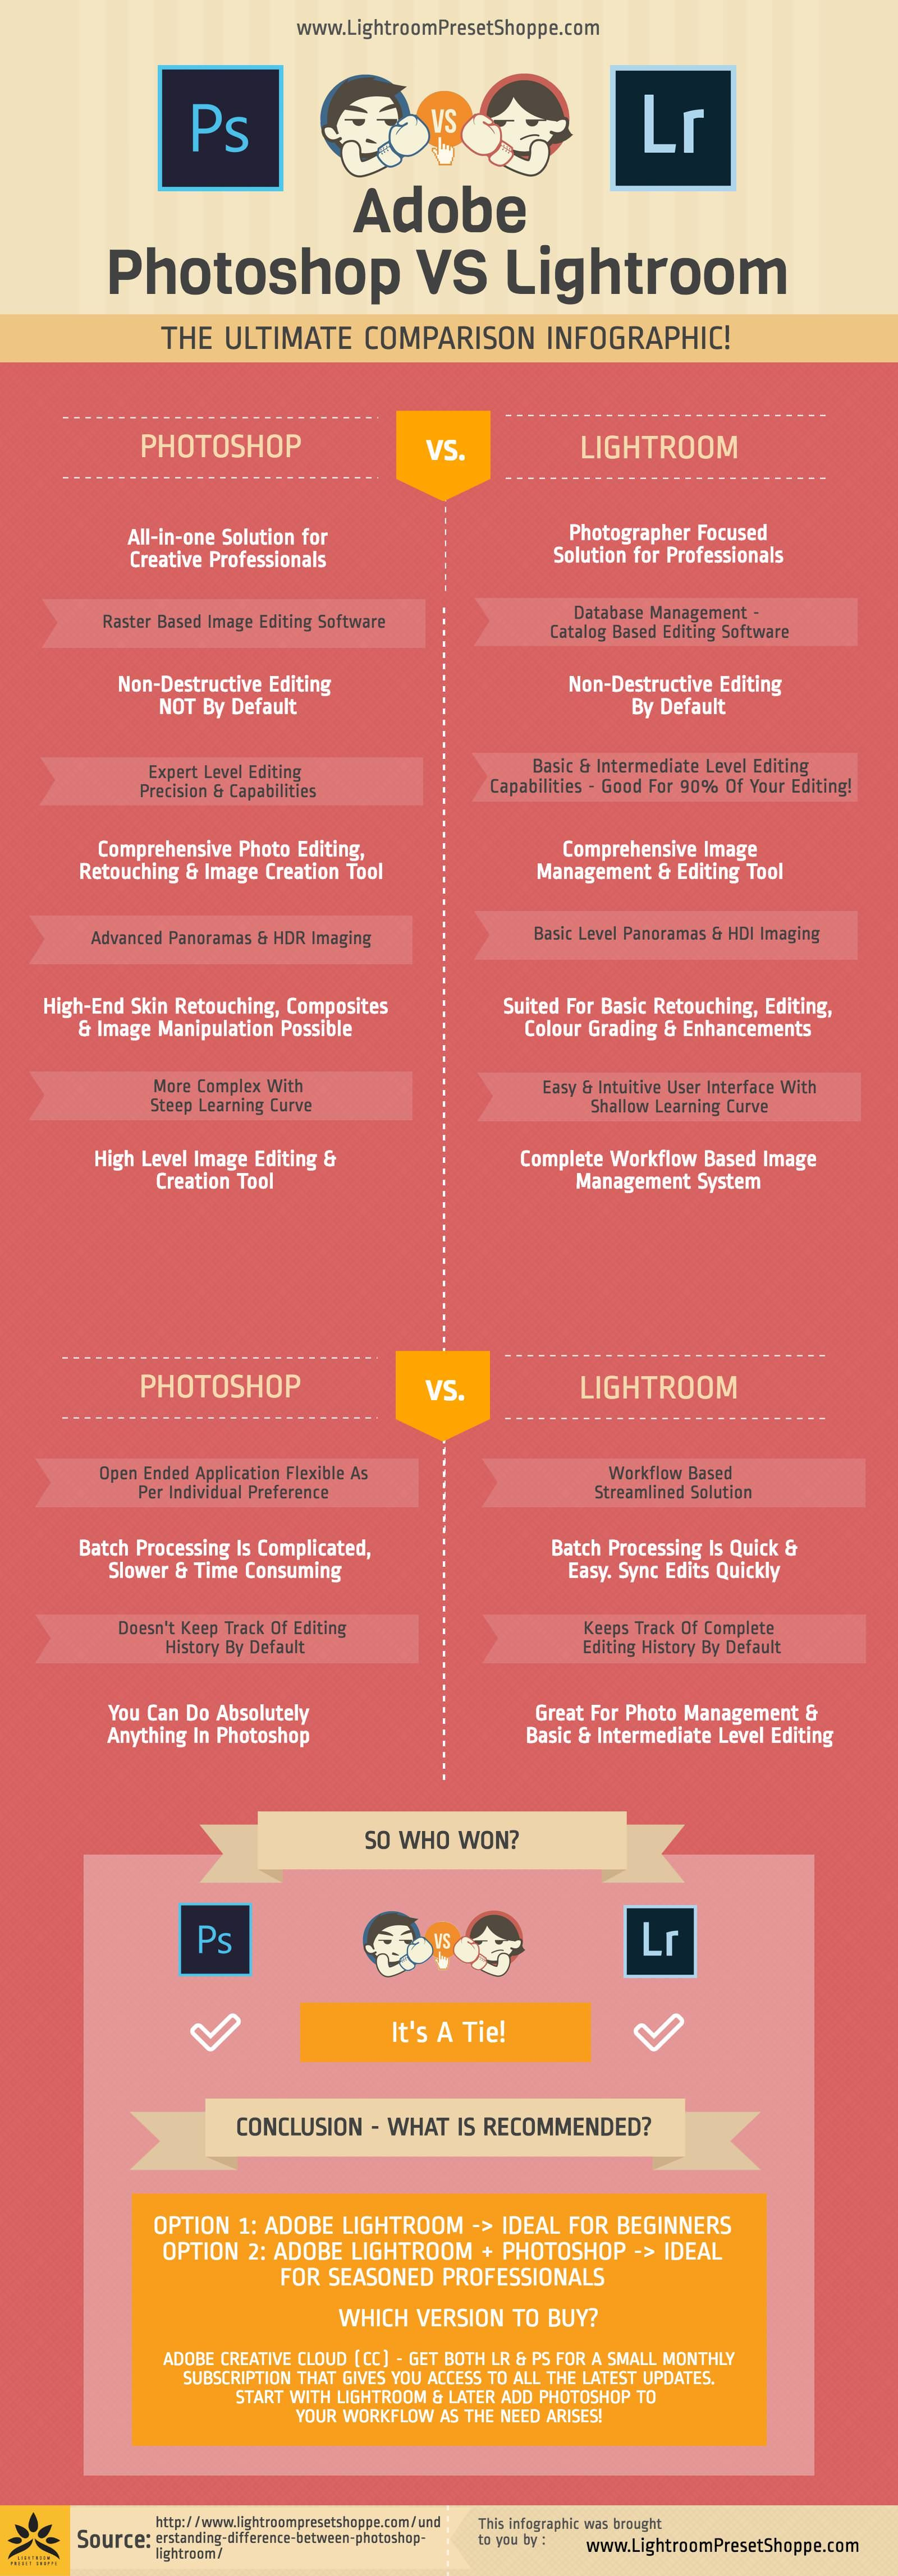 Photoshop Elements Vs Lightroom: Making the right choice ...